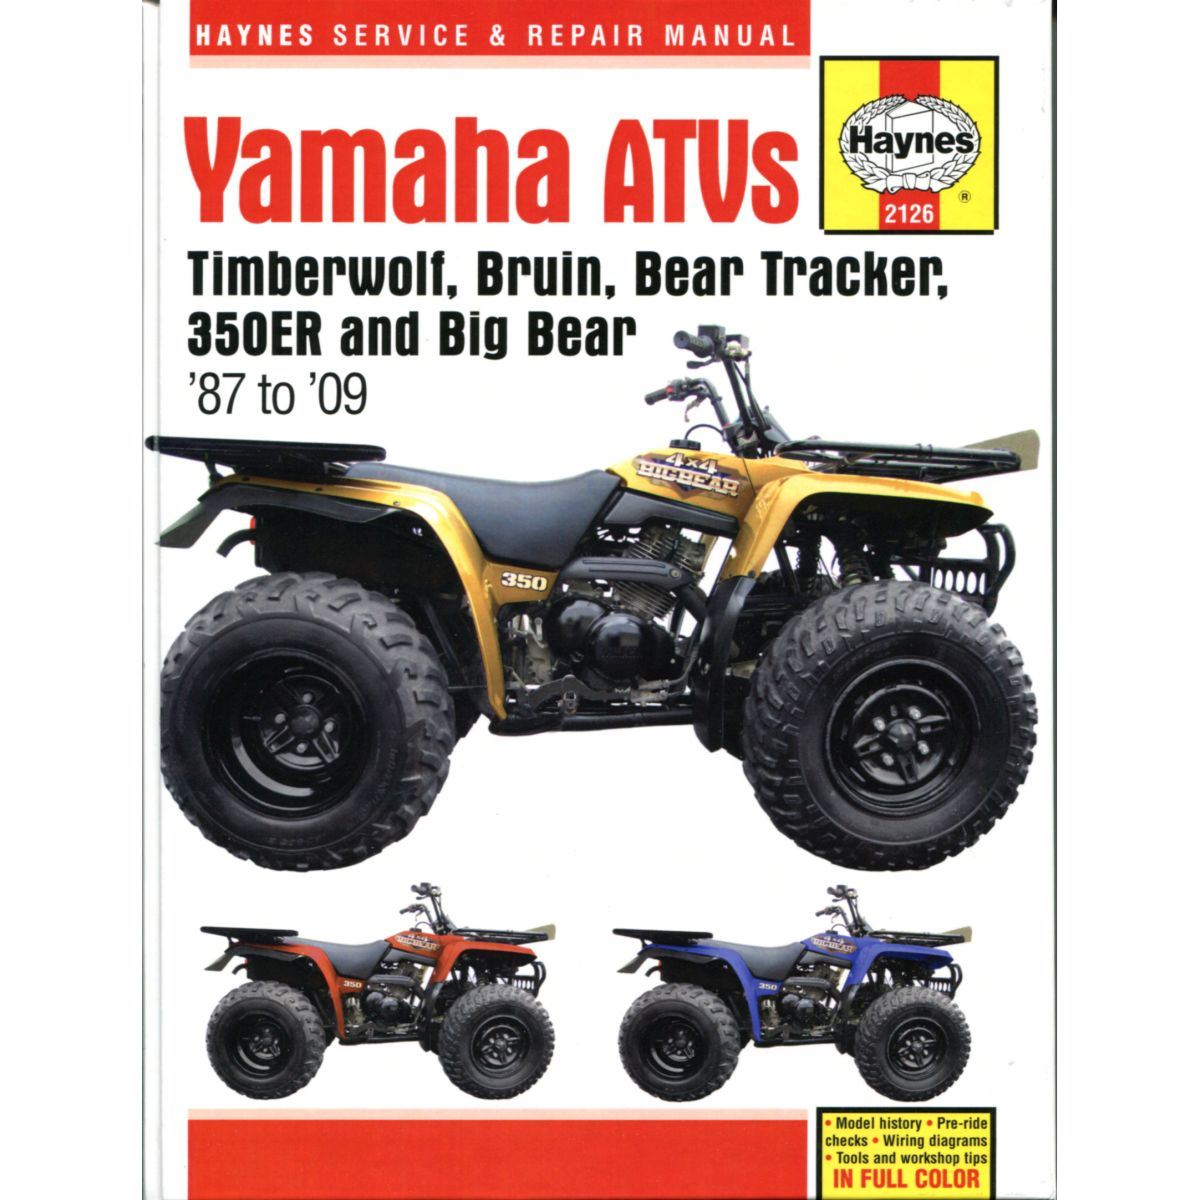 manual haynes for 2007 yamaha yfm 250 bw big bear 1p0b ebay rh ebay co uk